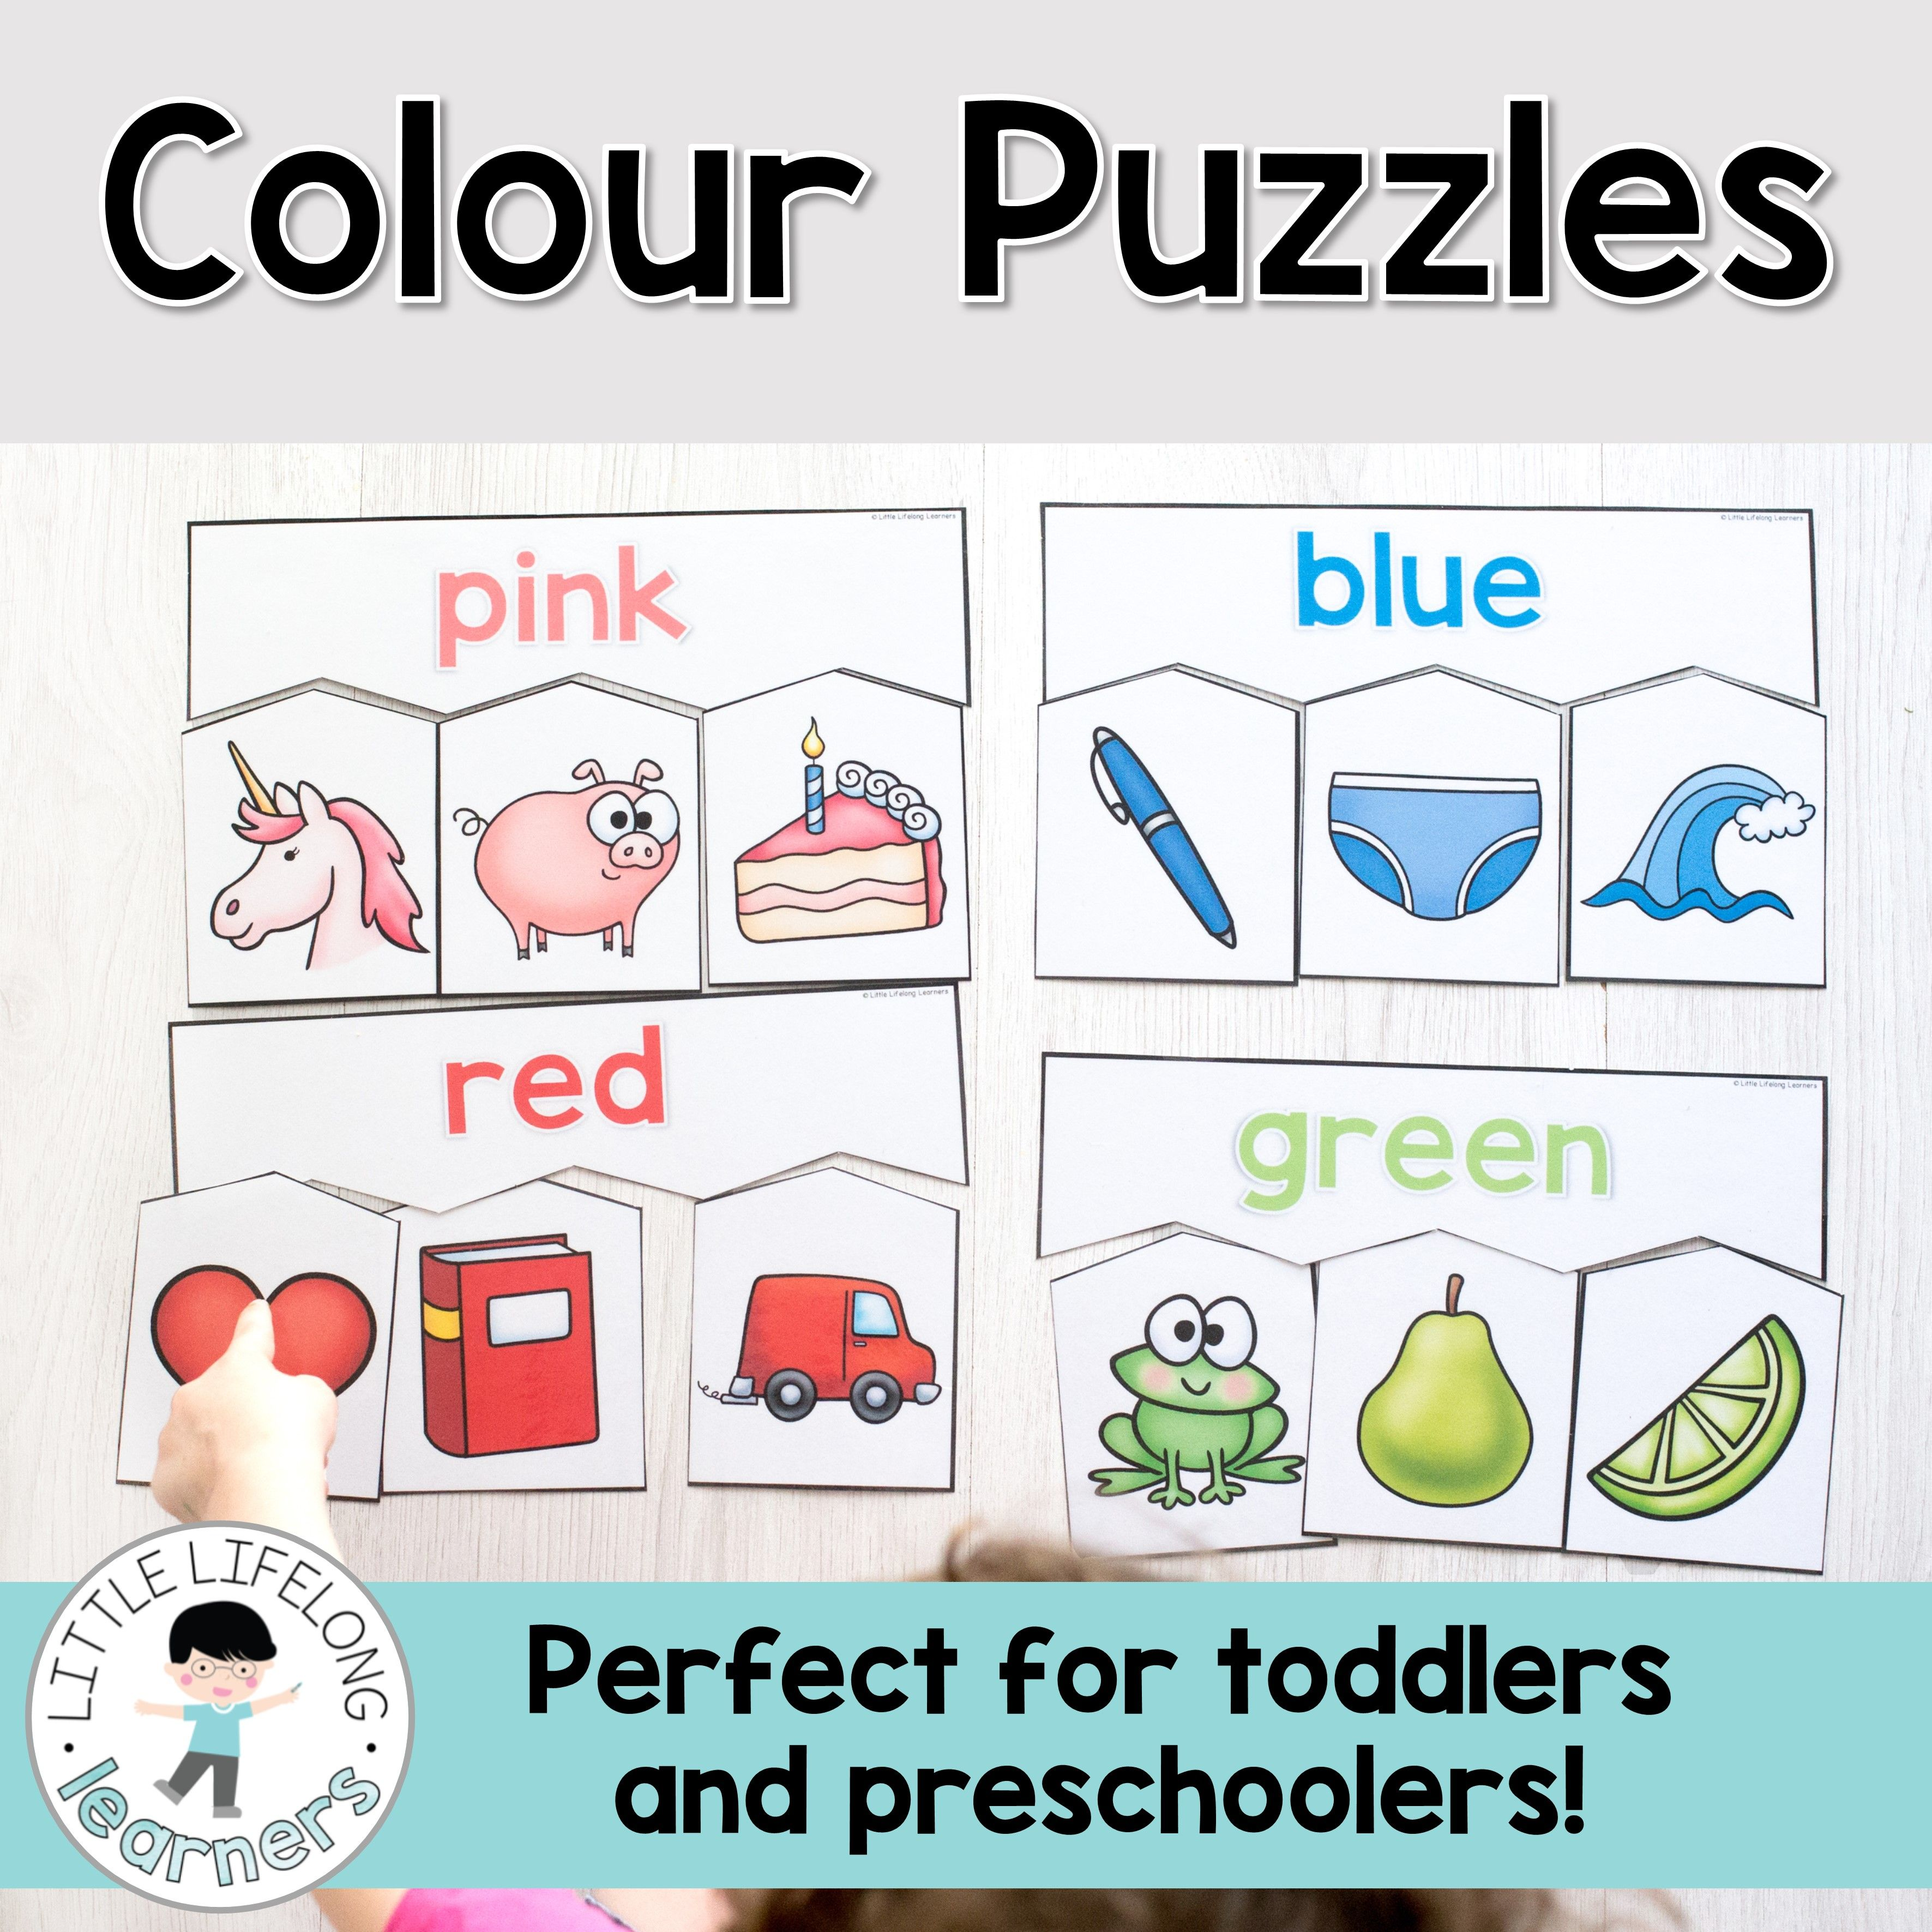 Colour Puzzles For Toddlers And Preschoolers Color Puzzle Toddler Preschool Preschool Activities [ 3543 x 3543 Pixel ]